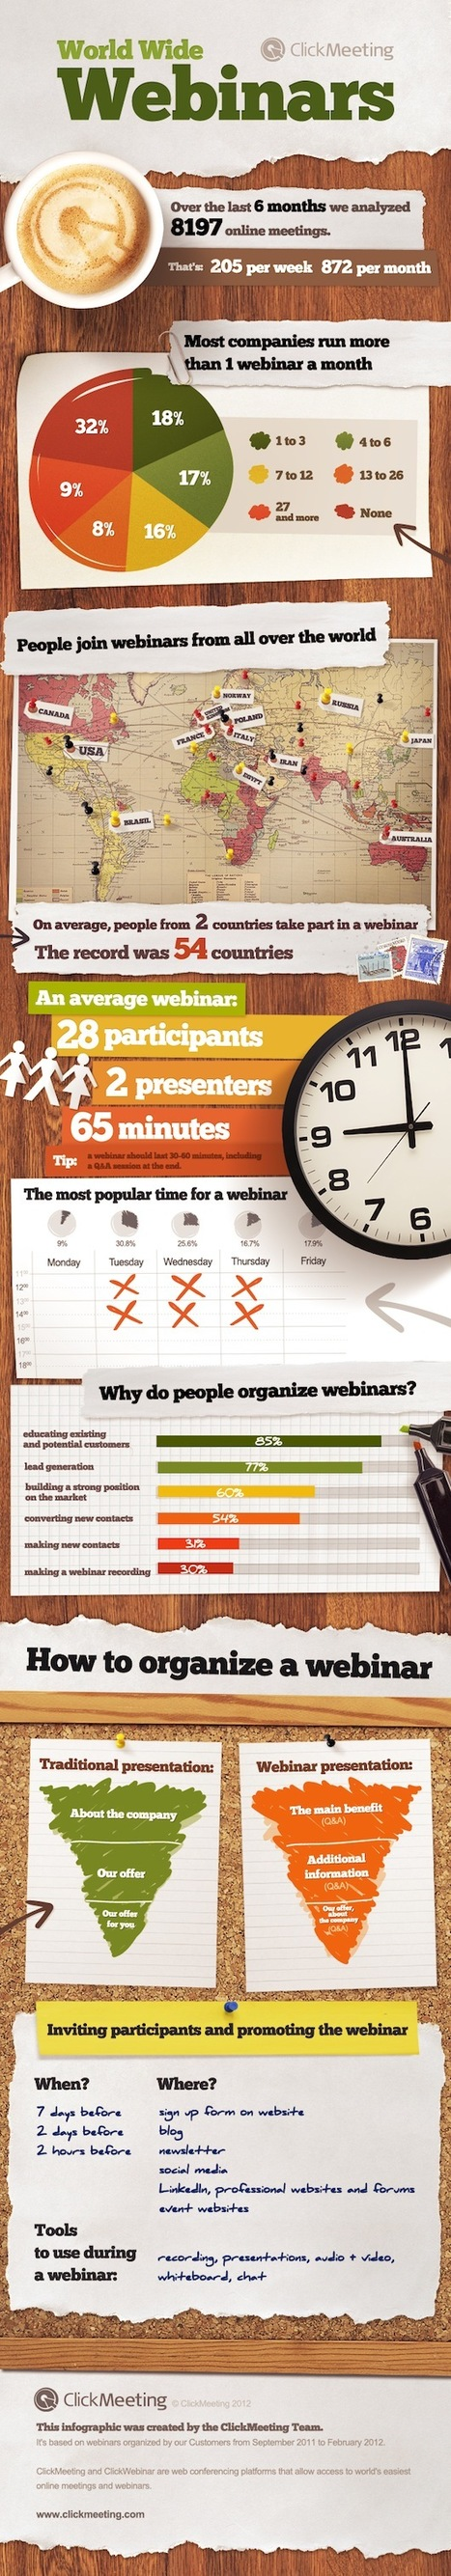 World Wide Webinars – Infographic | Webinar, WebConference, WebMeeting, WebTraining, Telesummit, Riunioni online, TeleSeminar and... | Scoop.it